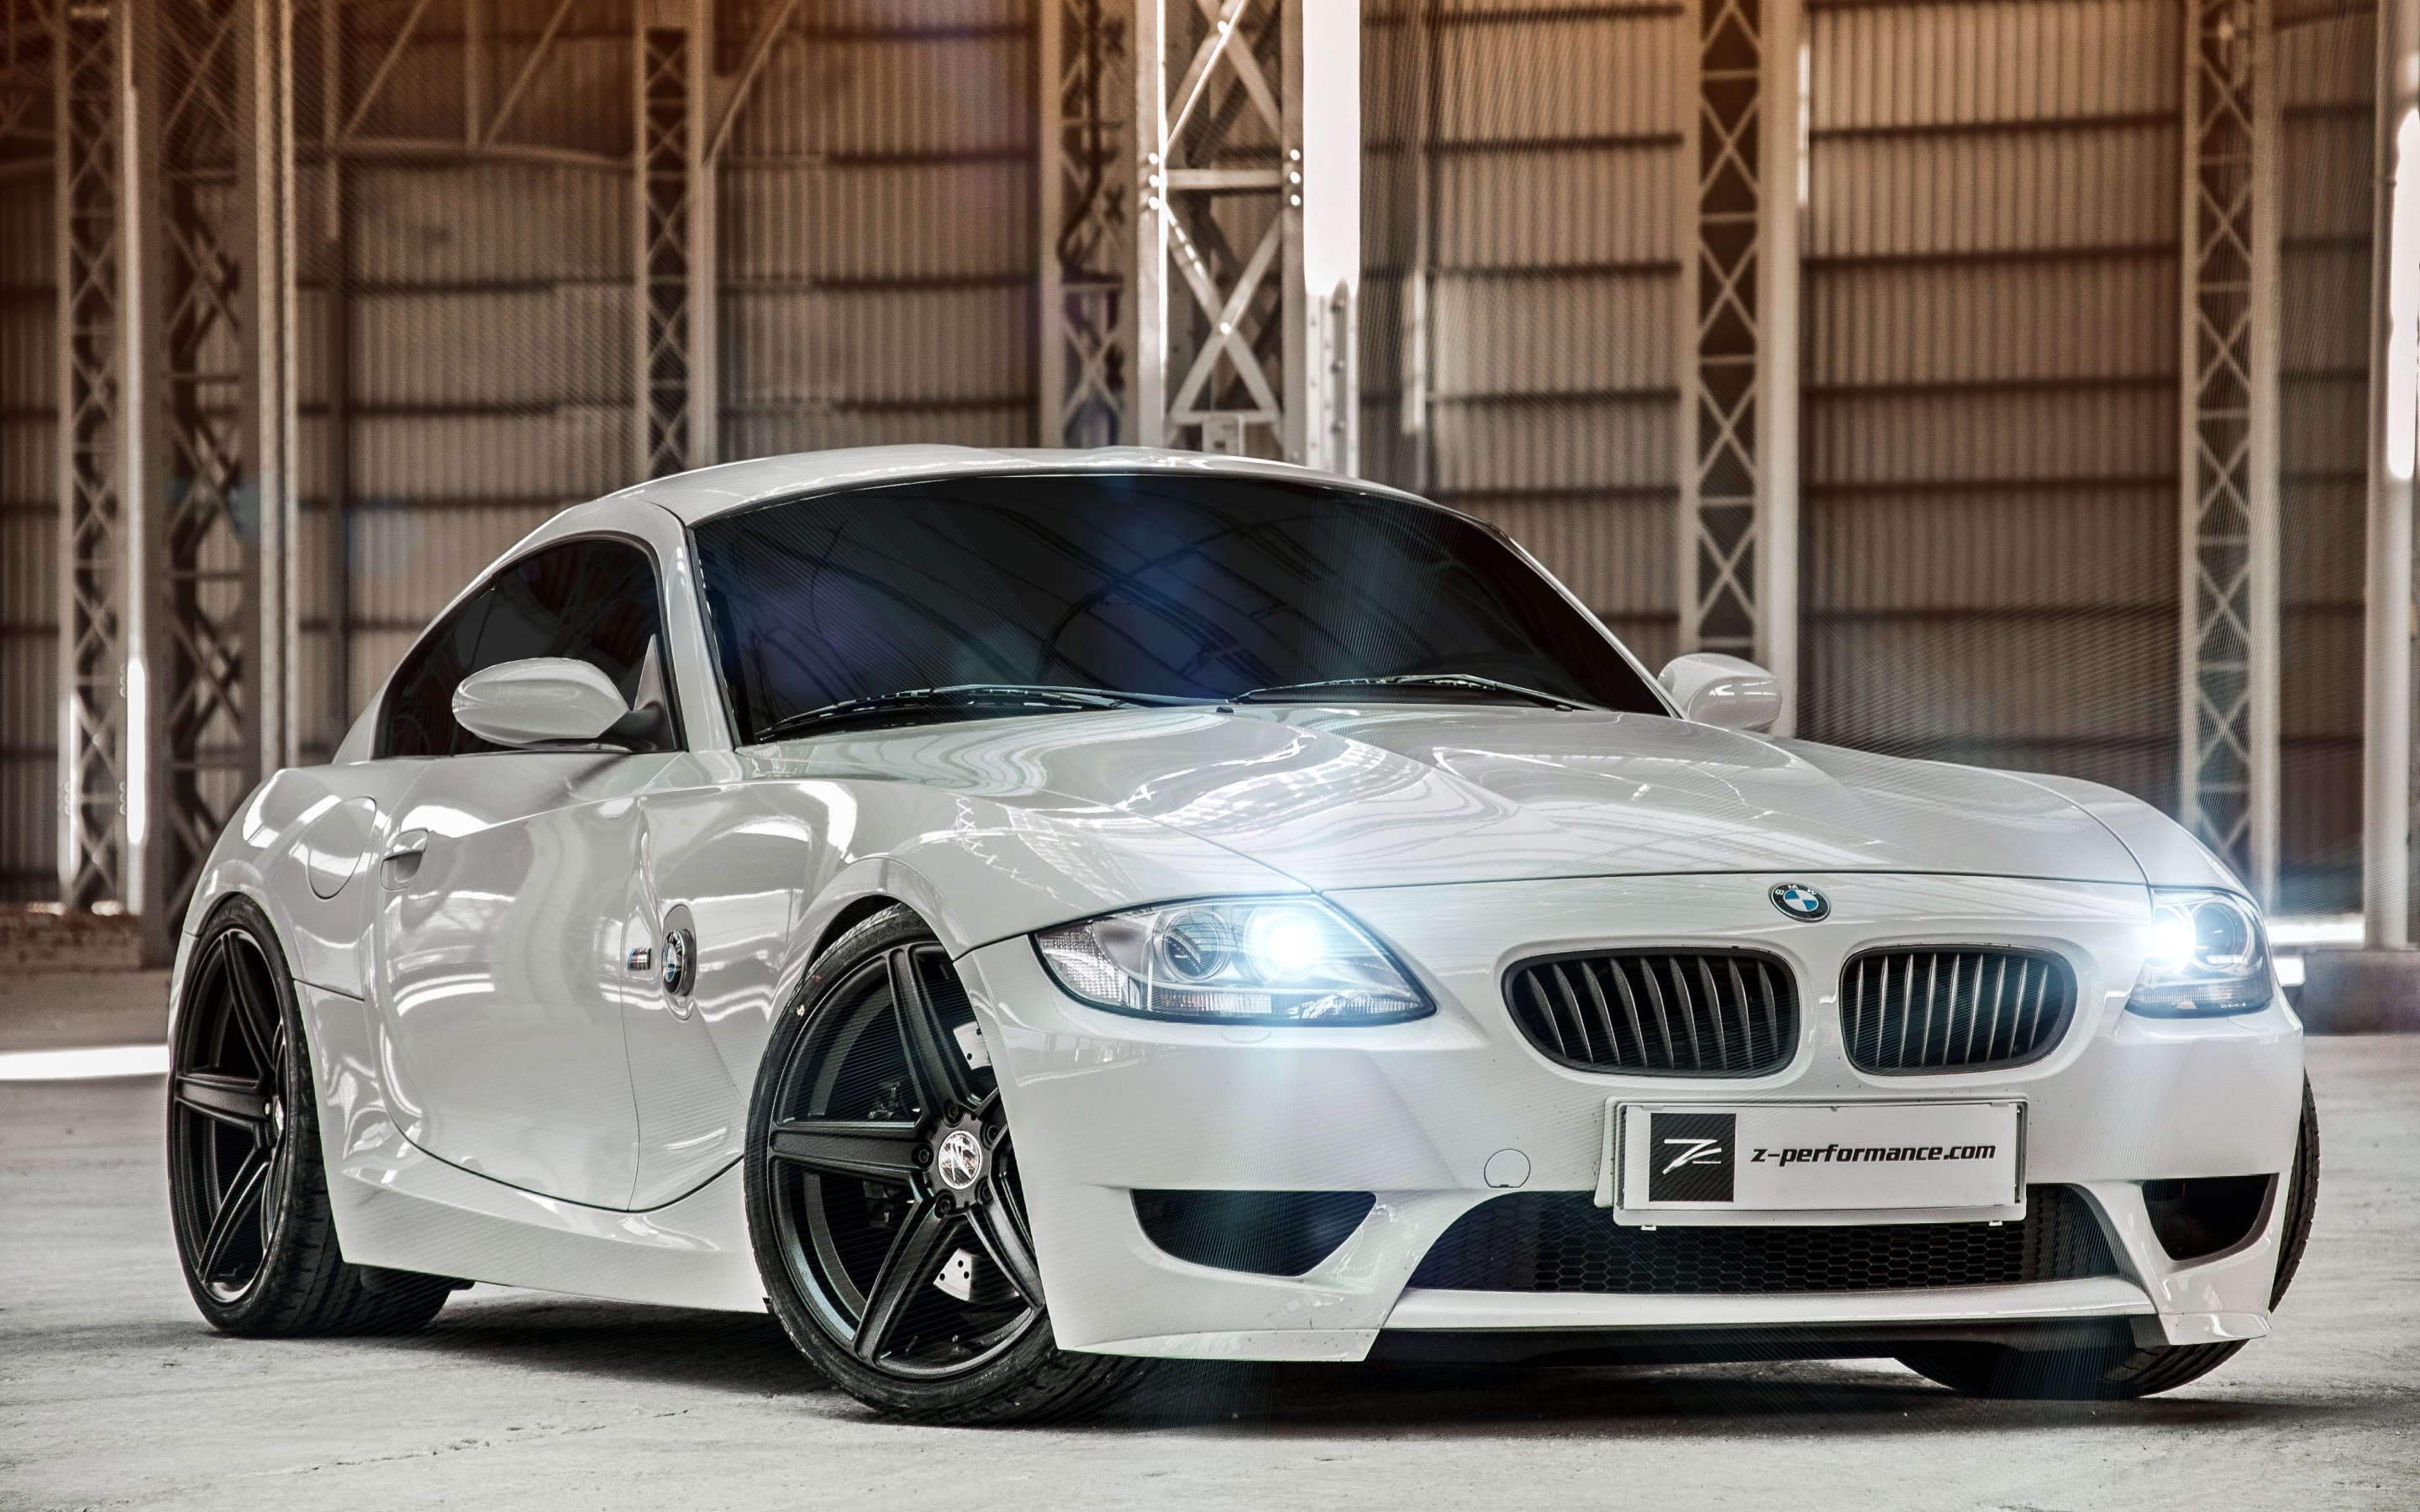 Bmw Z4 M Coupe Hot Car In 2 Photos Hd Wallpapers 4k